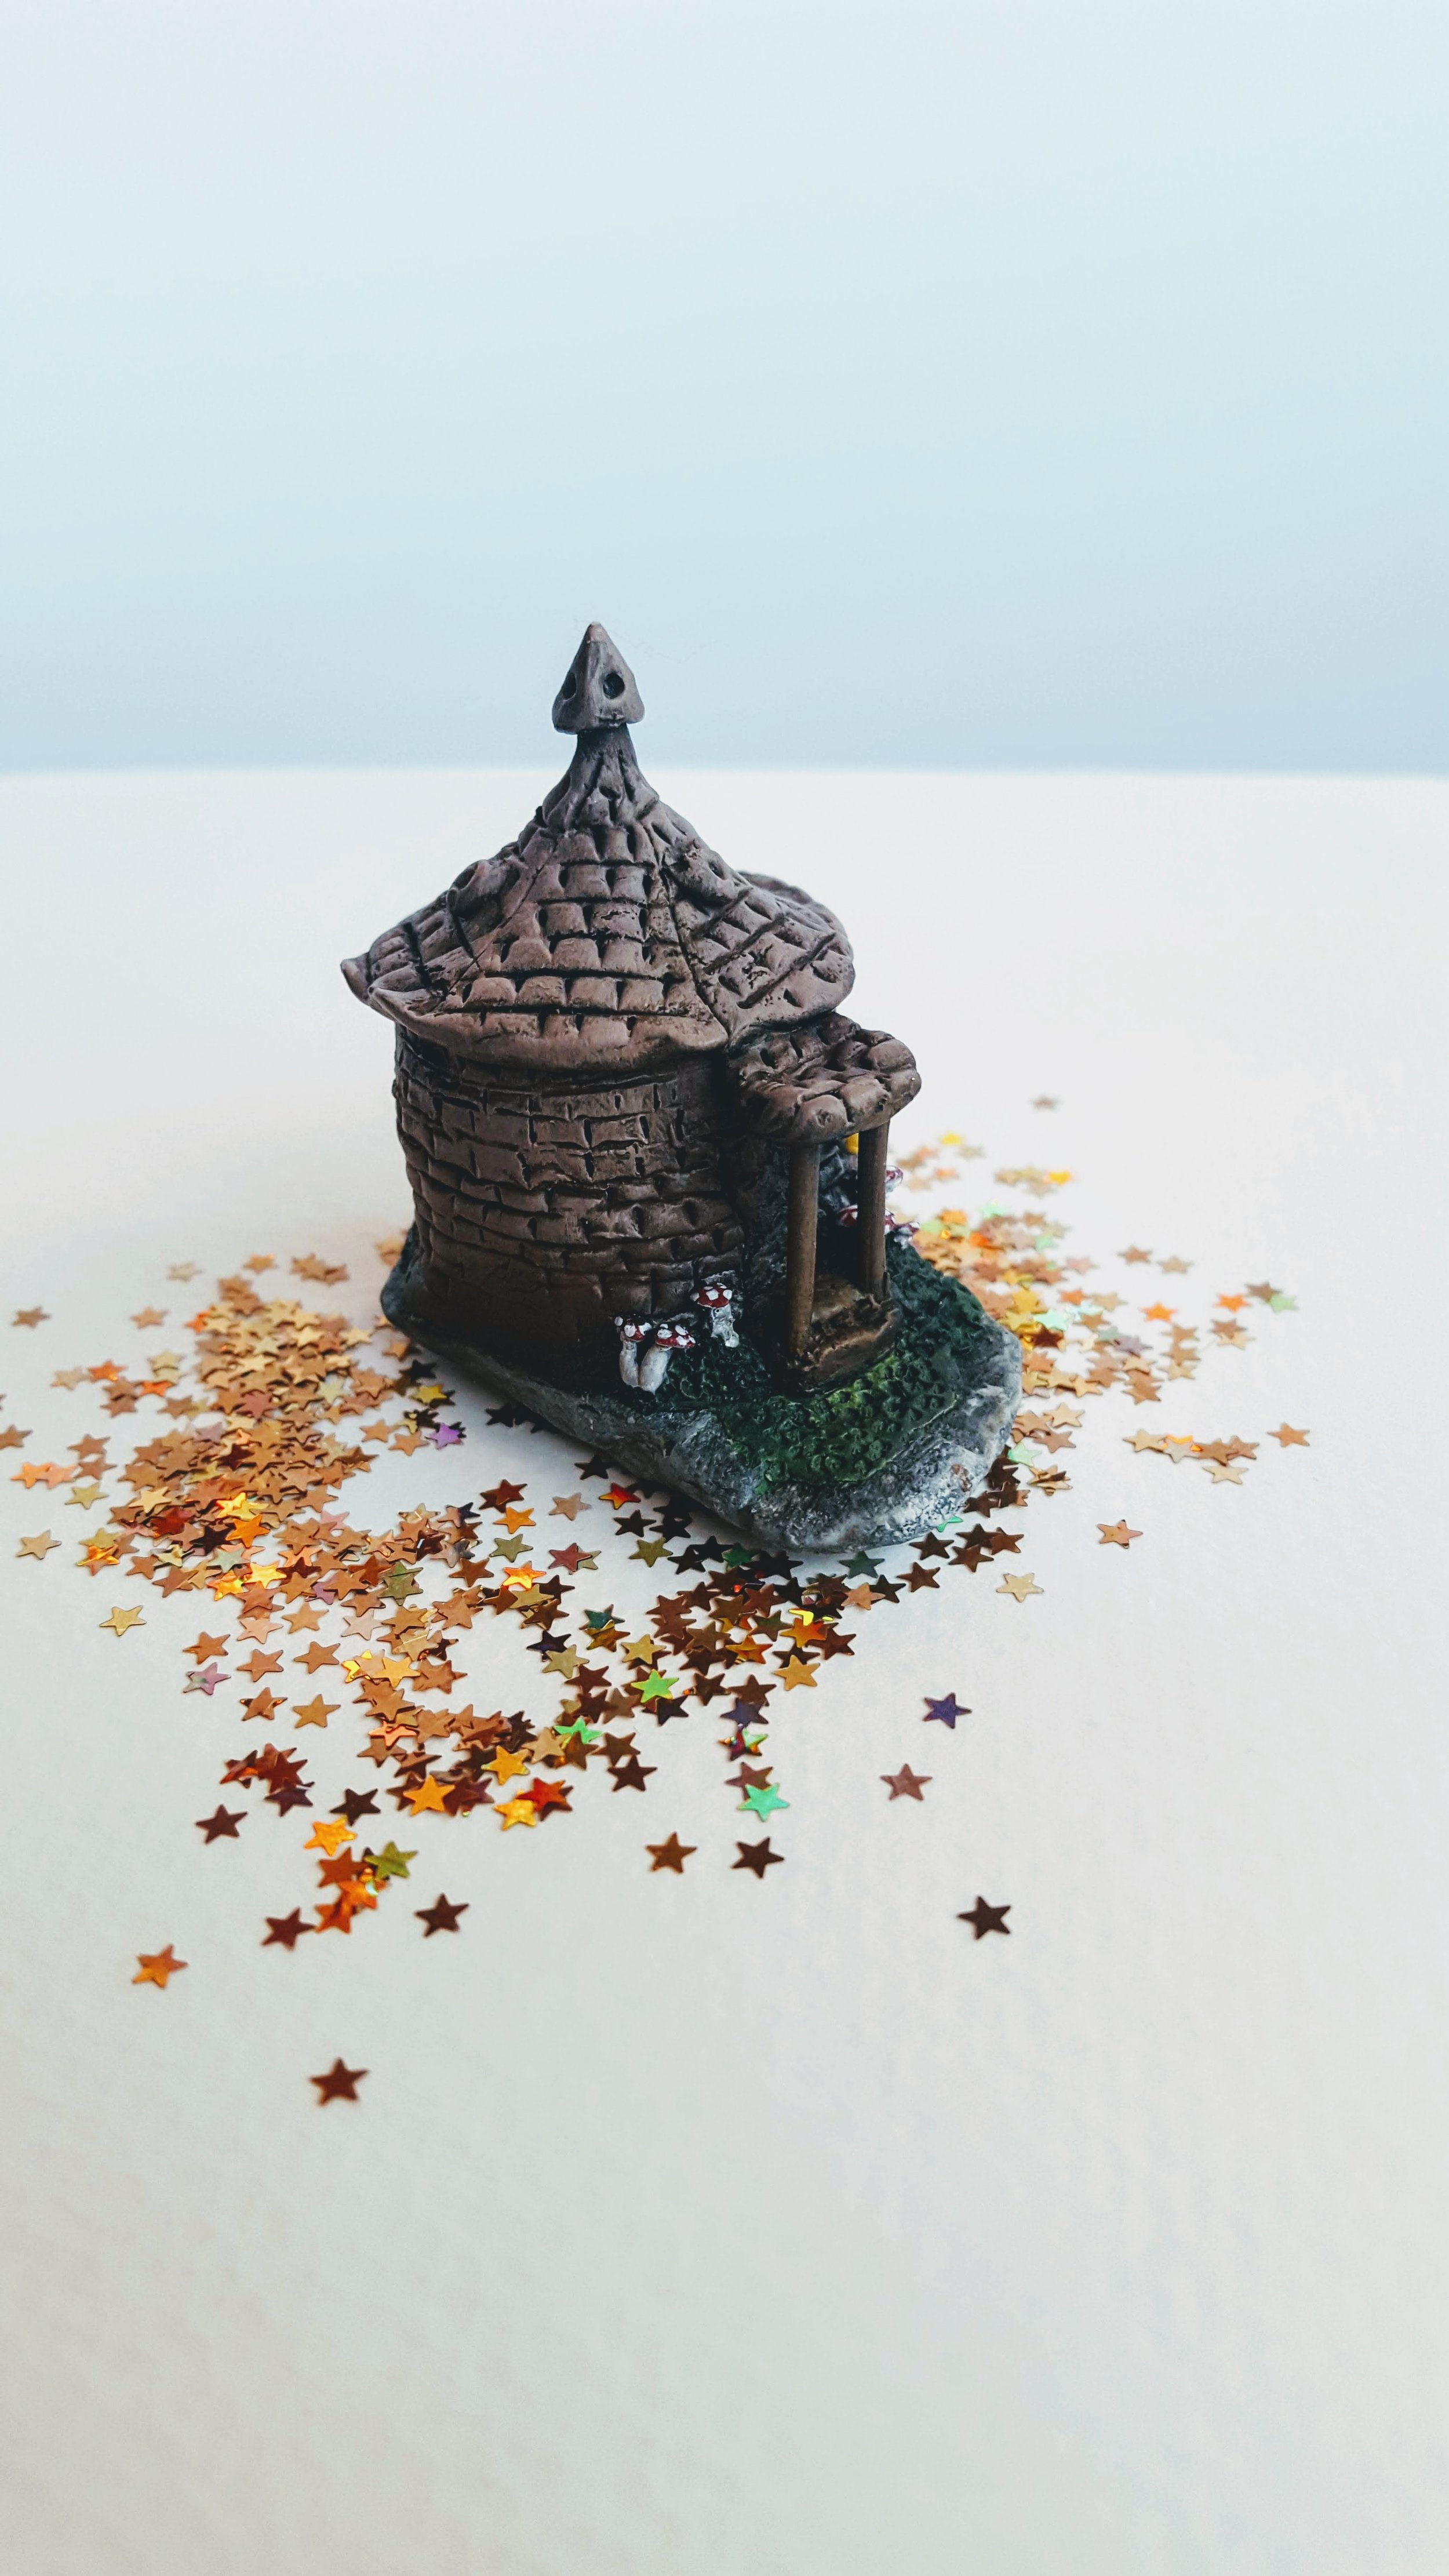 Clay Cottage Miniature - Buy Now!